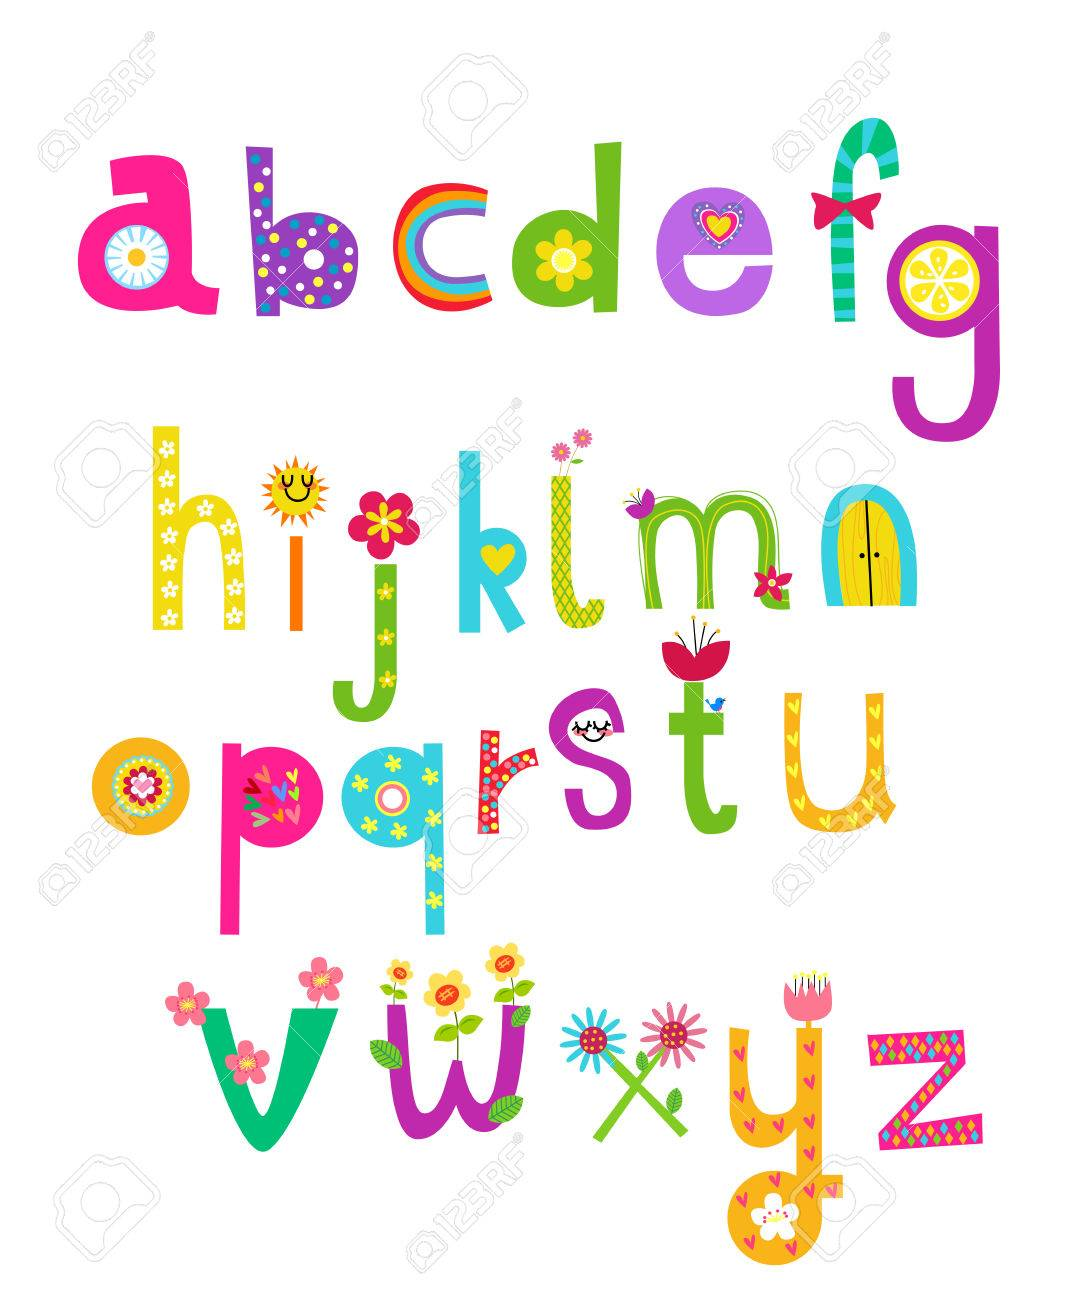 Cute alphabet royalty free cliparts vectors and stock illustration cute alphabet altavistaventures Image collections